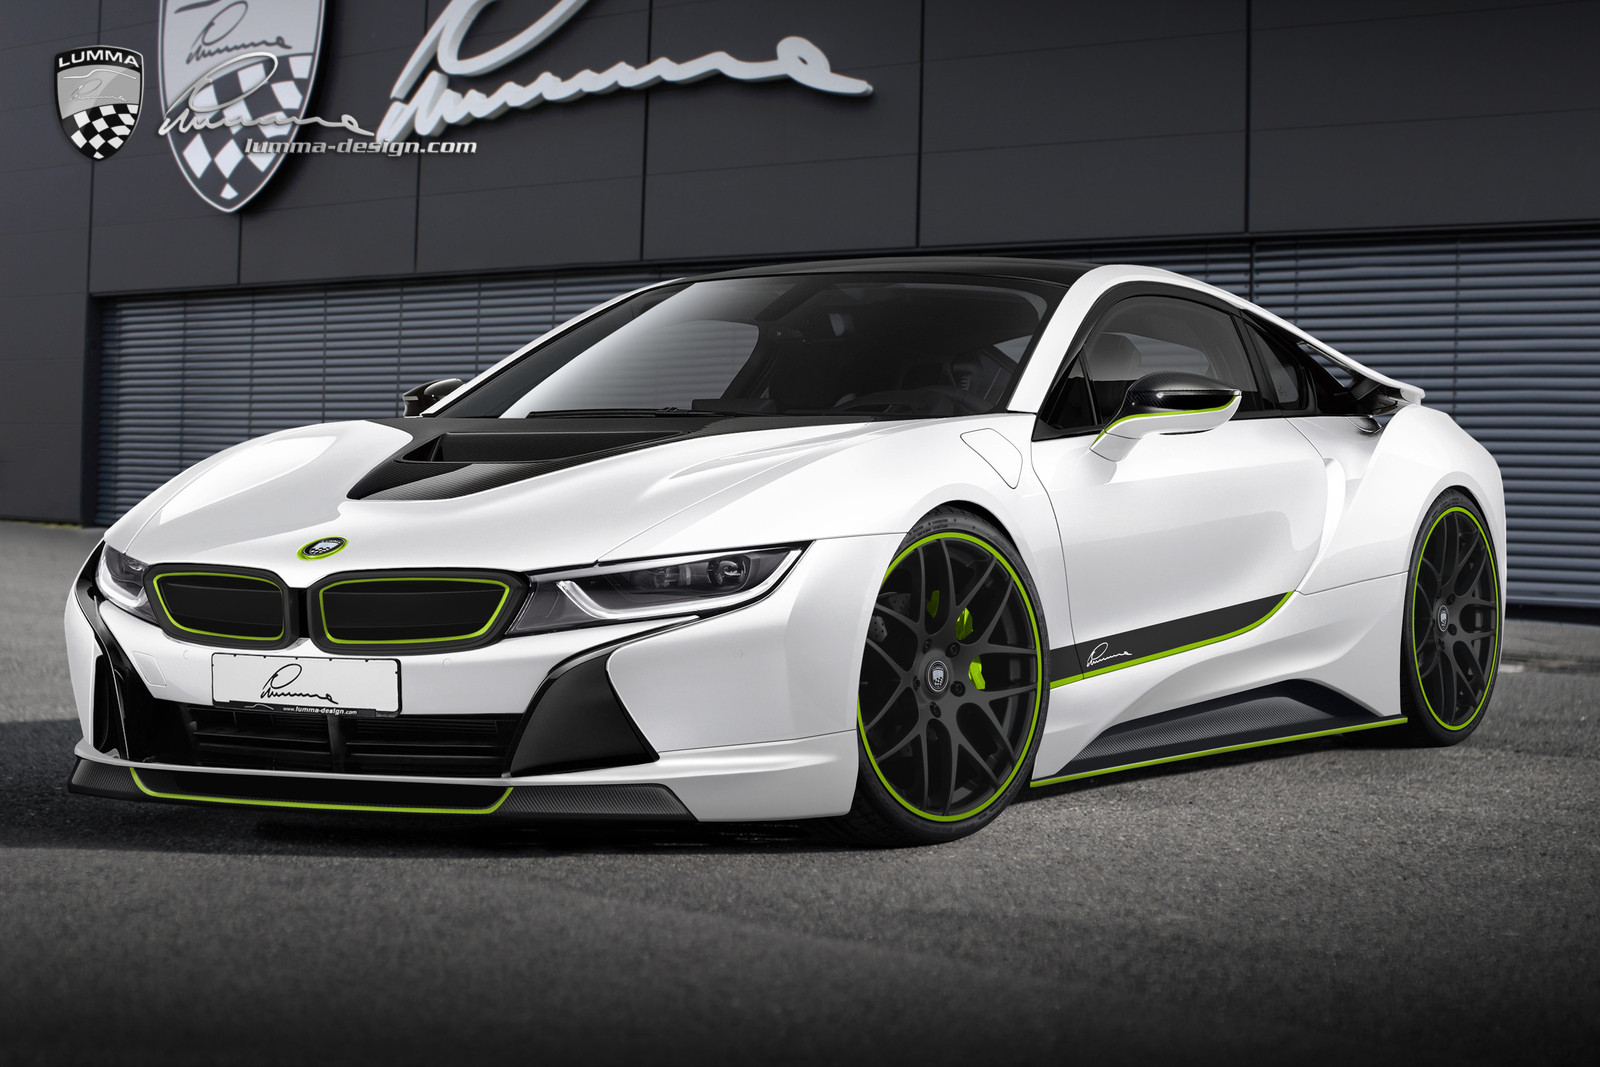 bmw i8 clr concept by lumma design imagined gtspirit